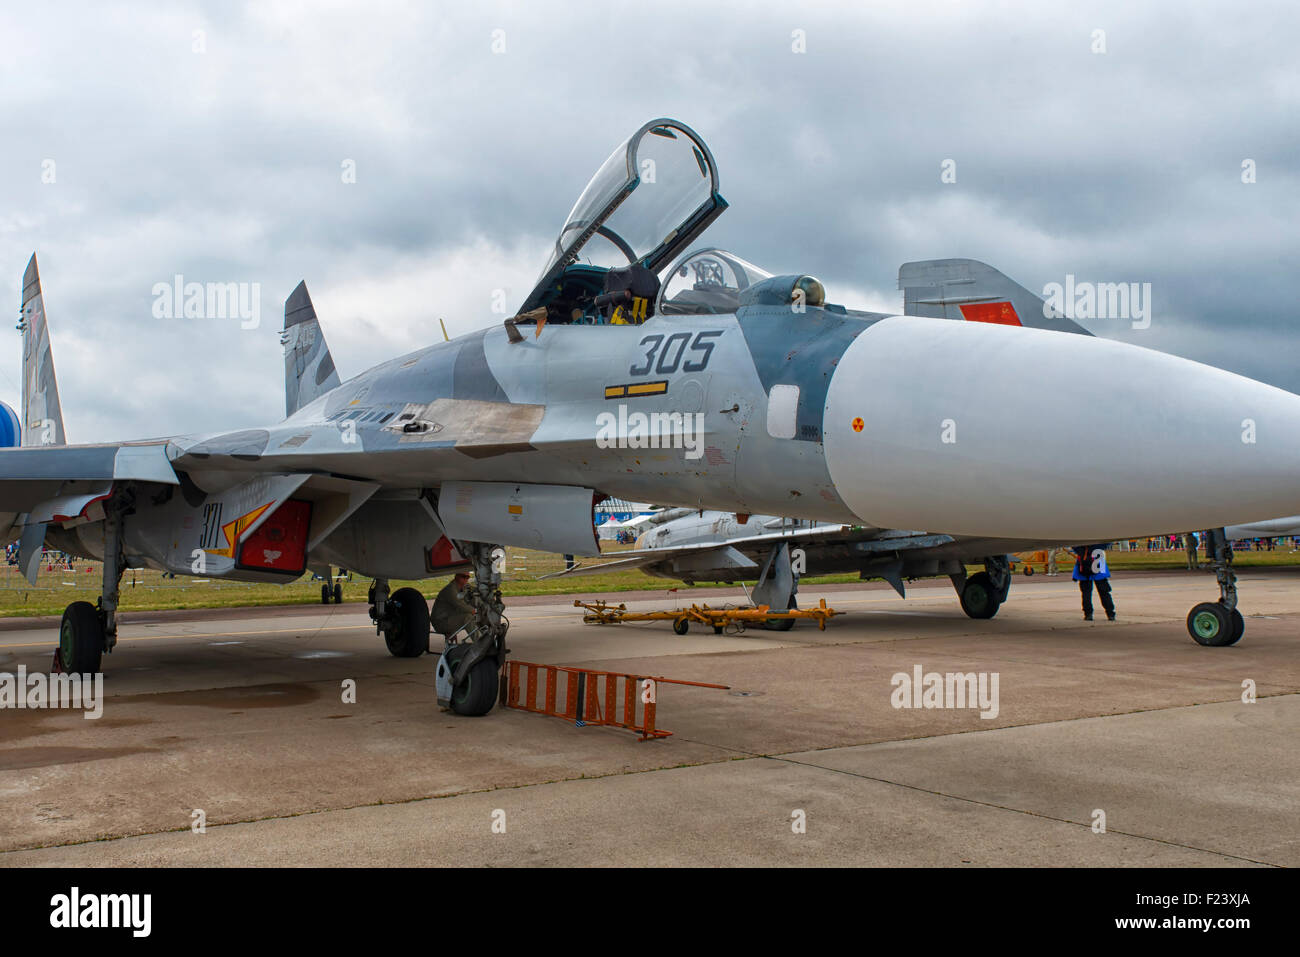 Sukhoi SU-27 Flanker at MAKS 2015 Air Show in Moscow, Russia - Stock Image